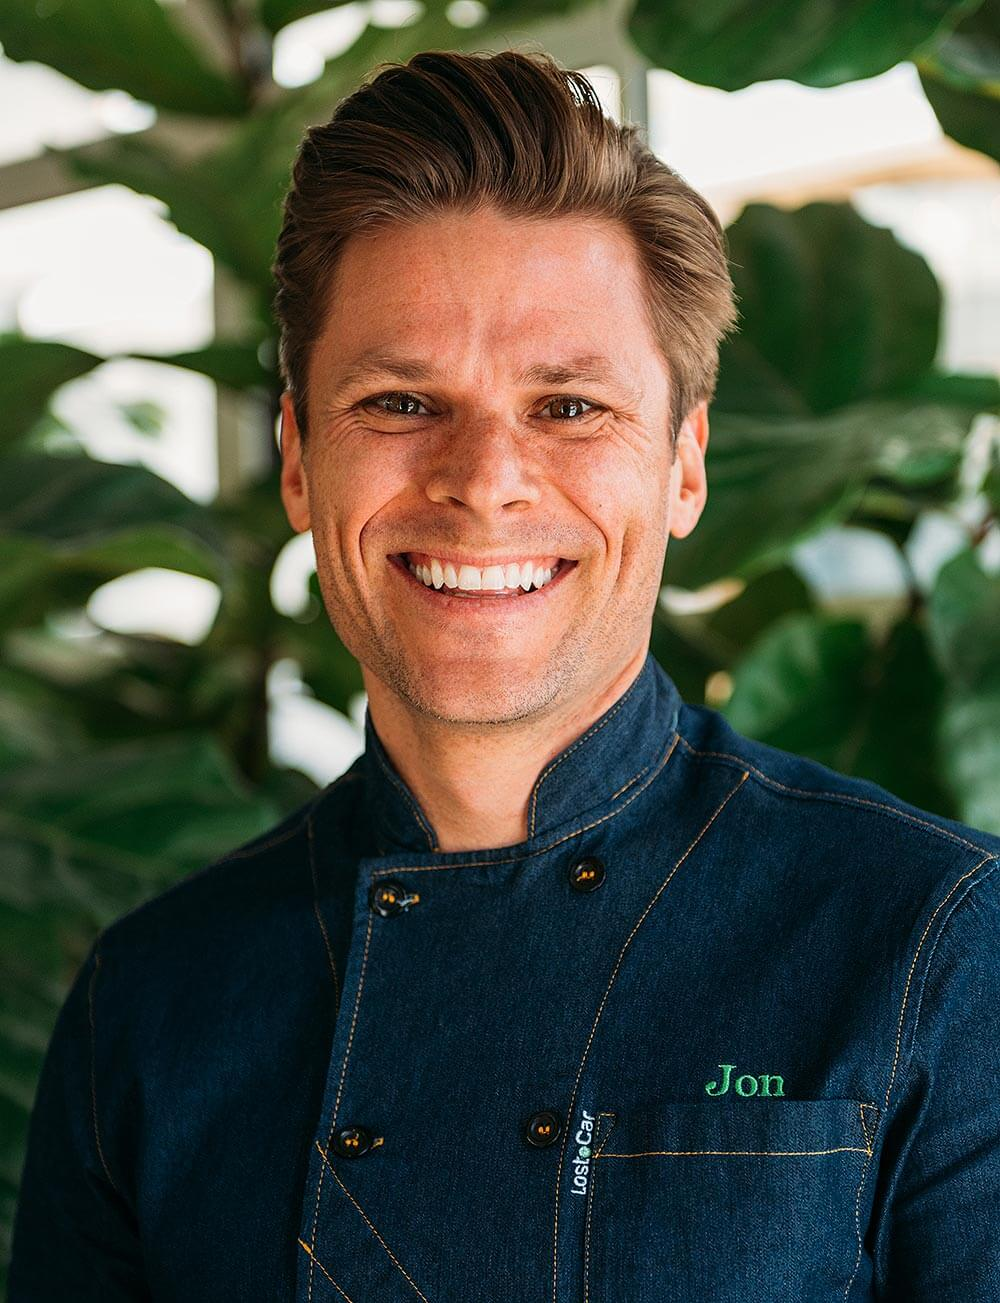 Meet Jonathan Rollo - Health, Nutrition, and Trends Expert